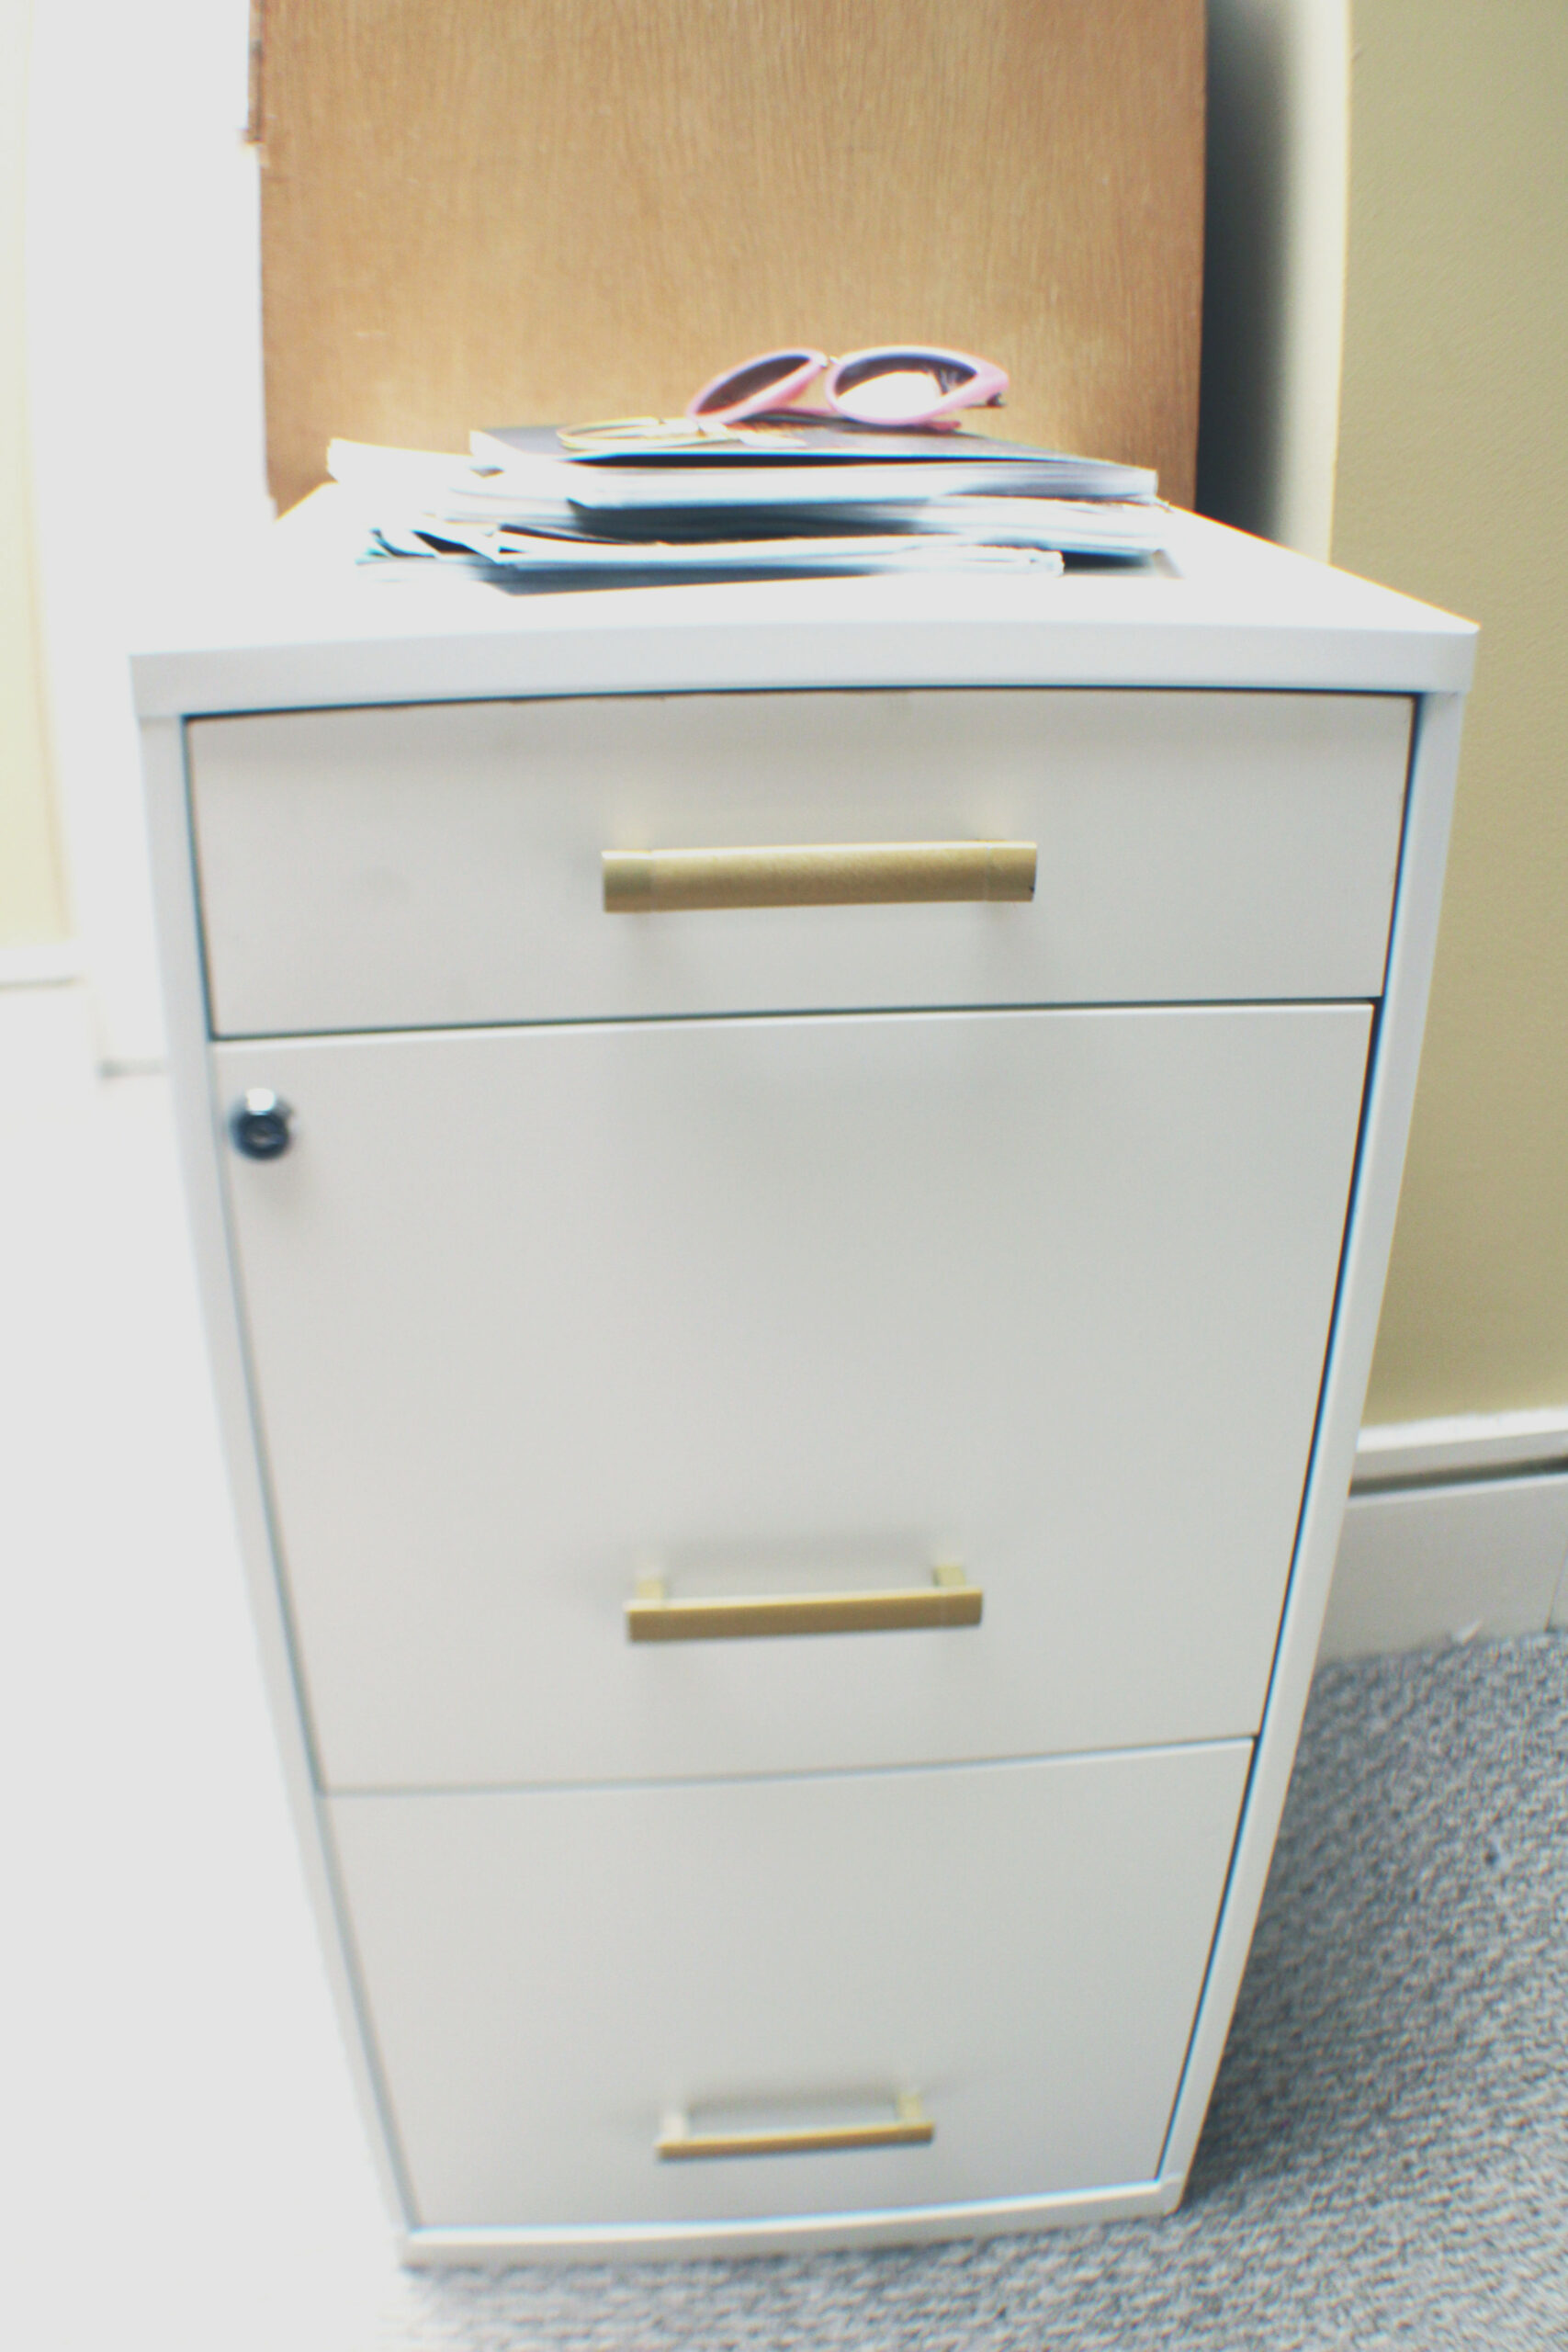 Does Goodwill Take File Cabinets